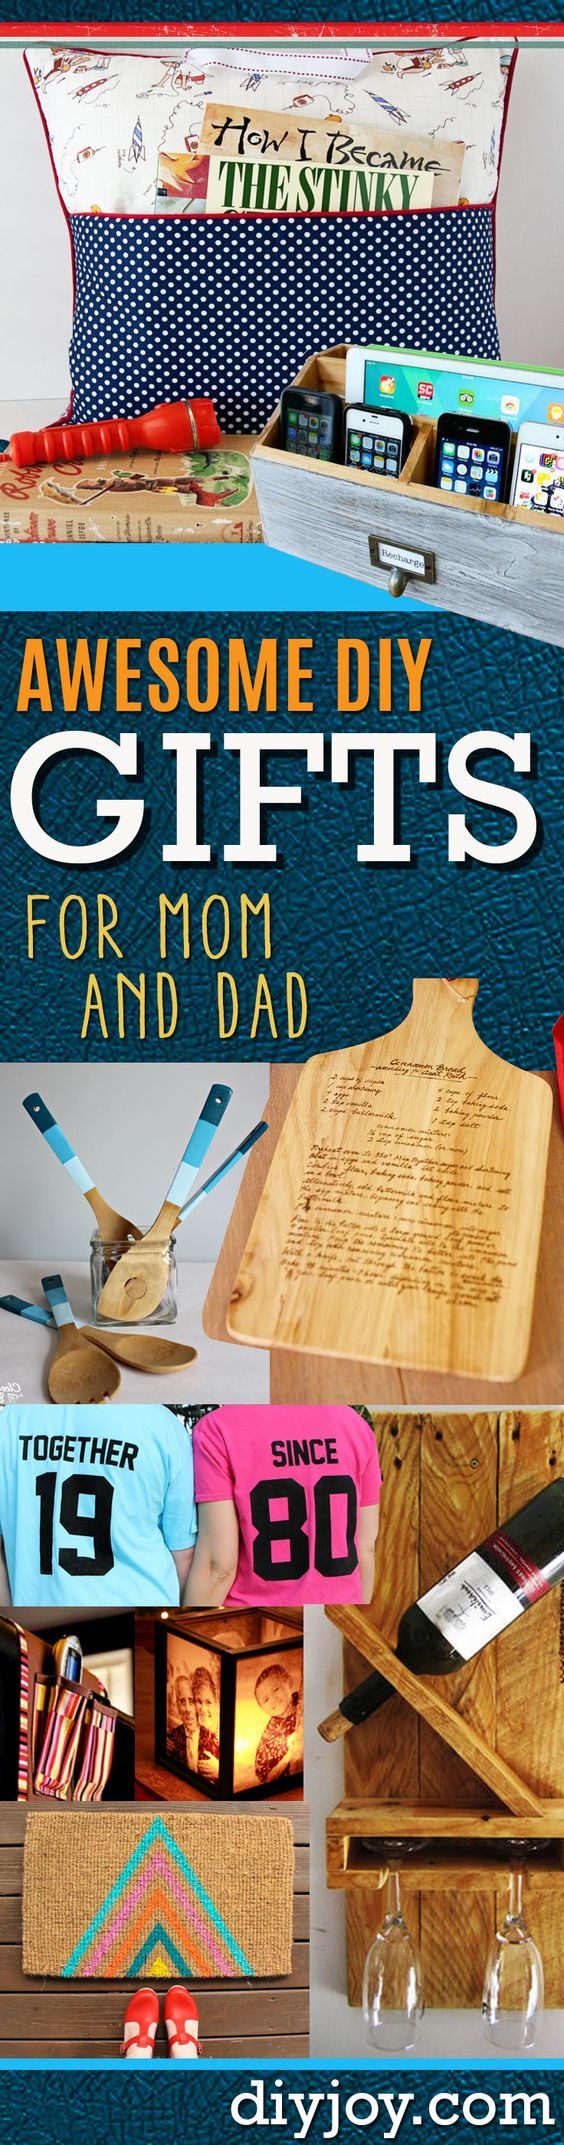 Awesome DIY Gift Ideas Mom And Dad Will Love Homemade Christmas Gift Ideas